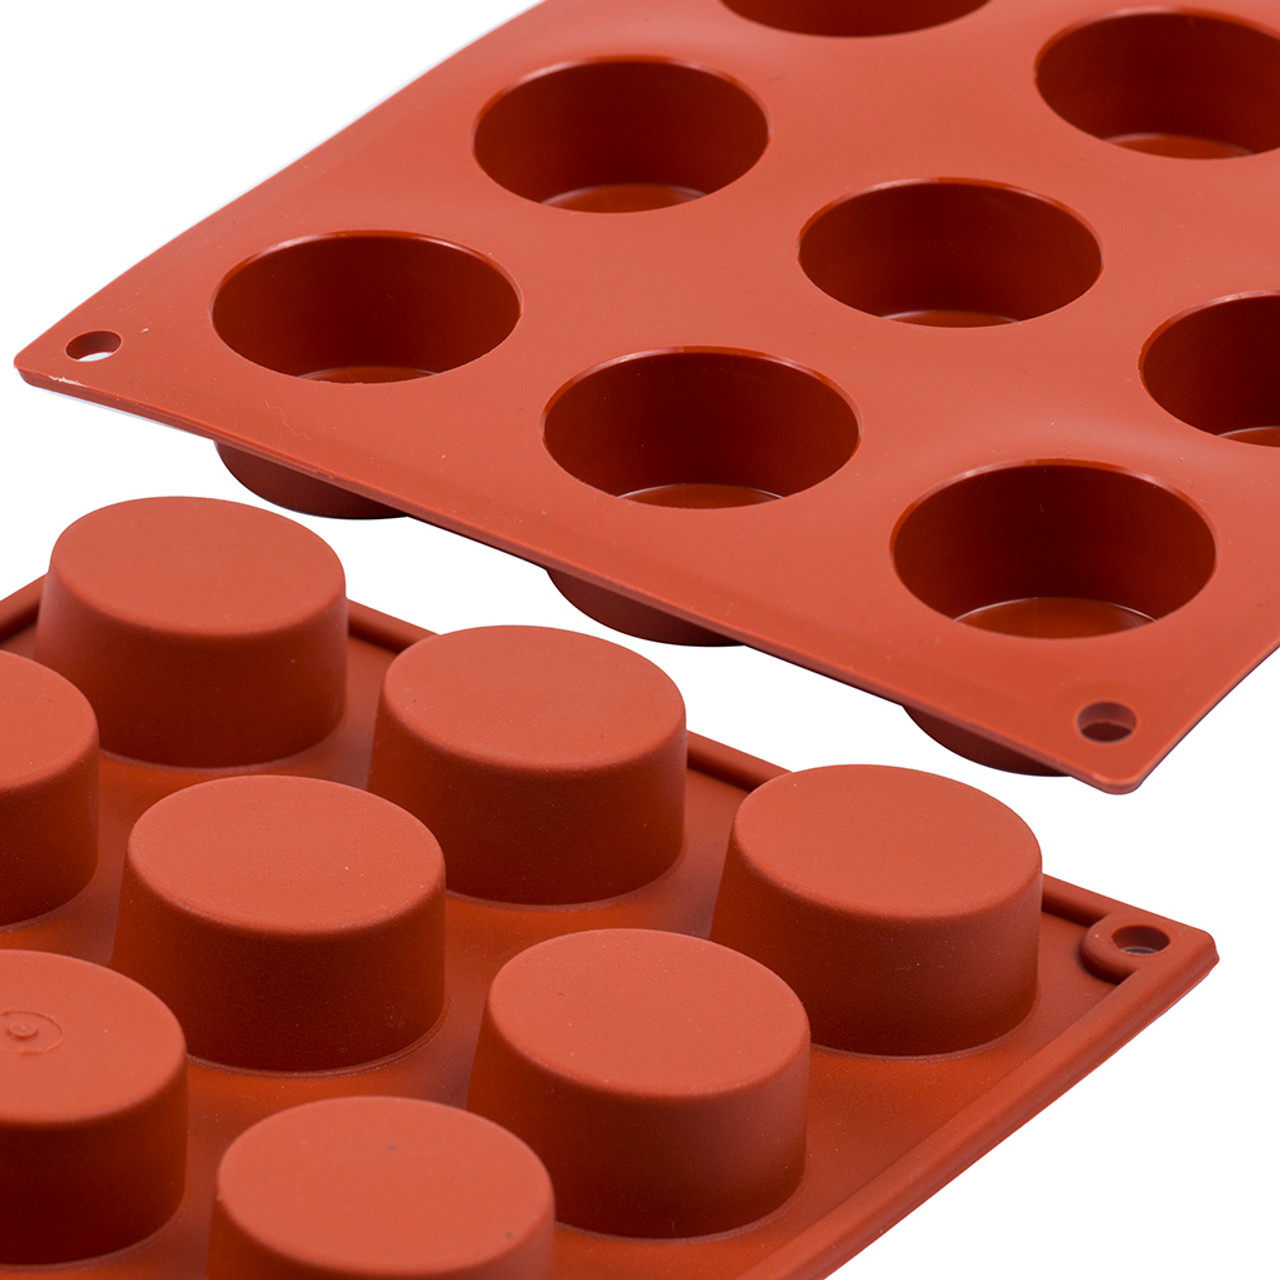 Silicon Mould - Petits Fours x 15's